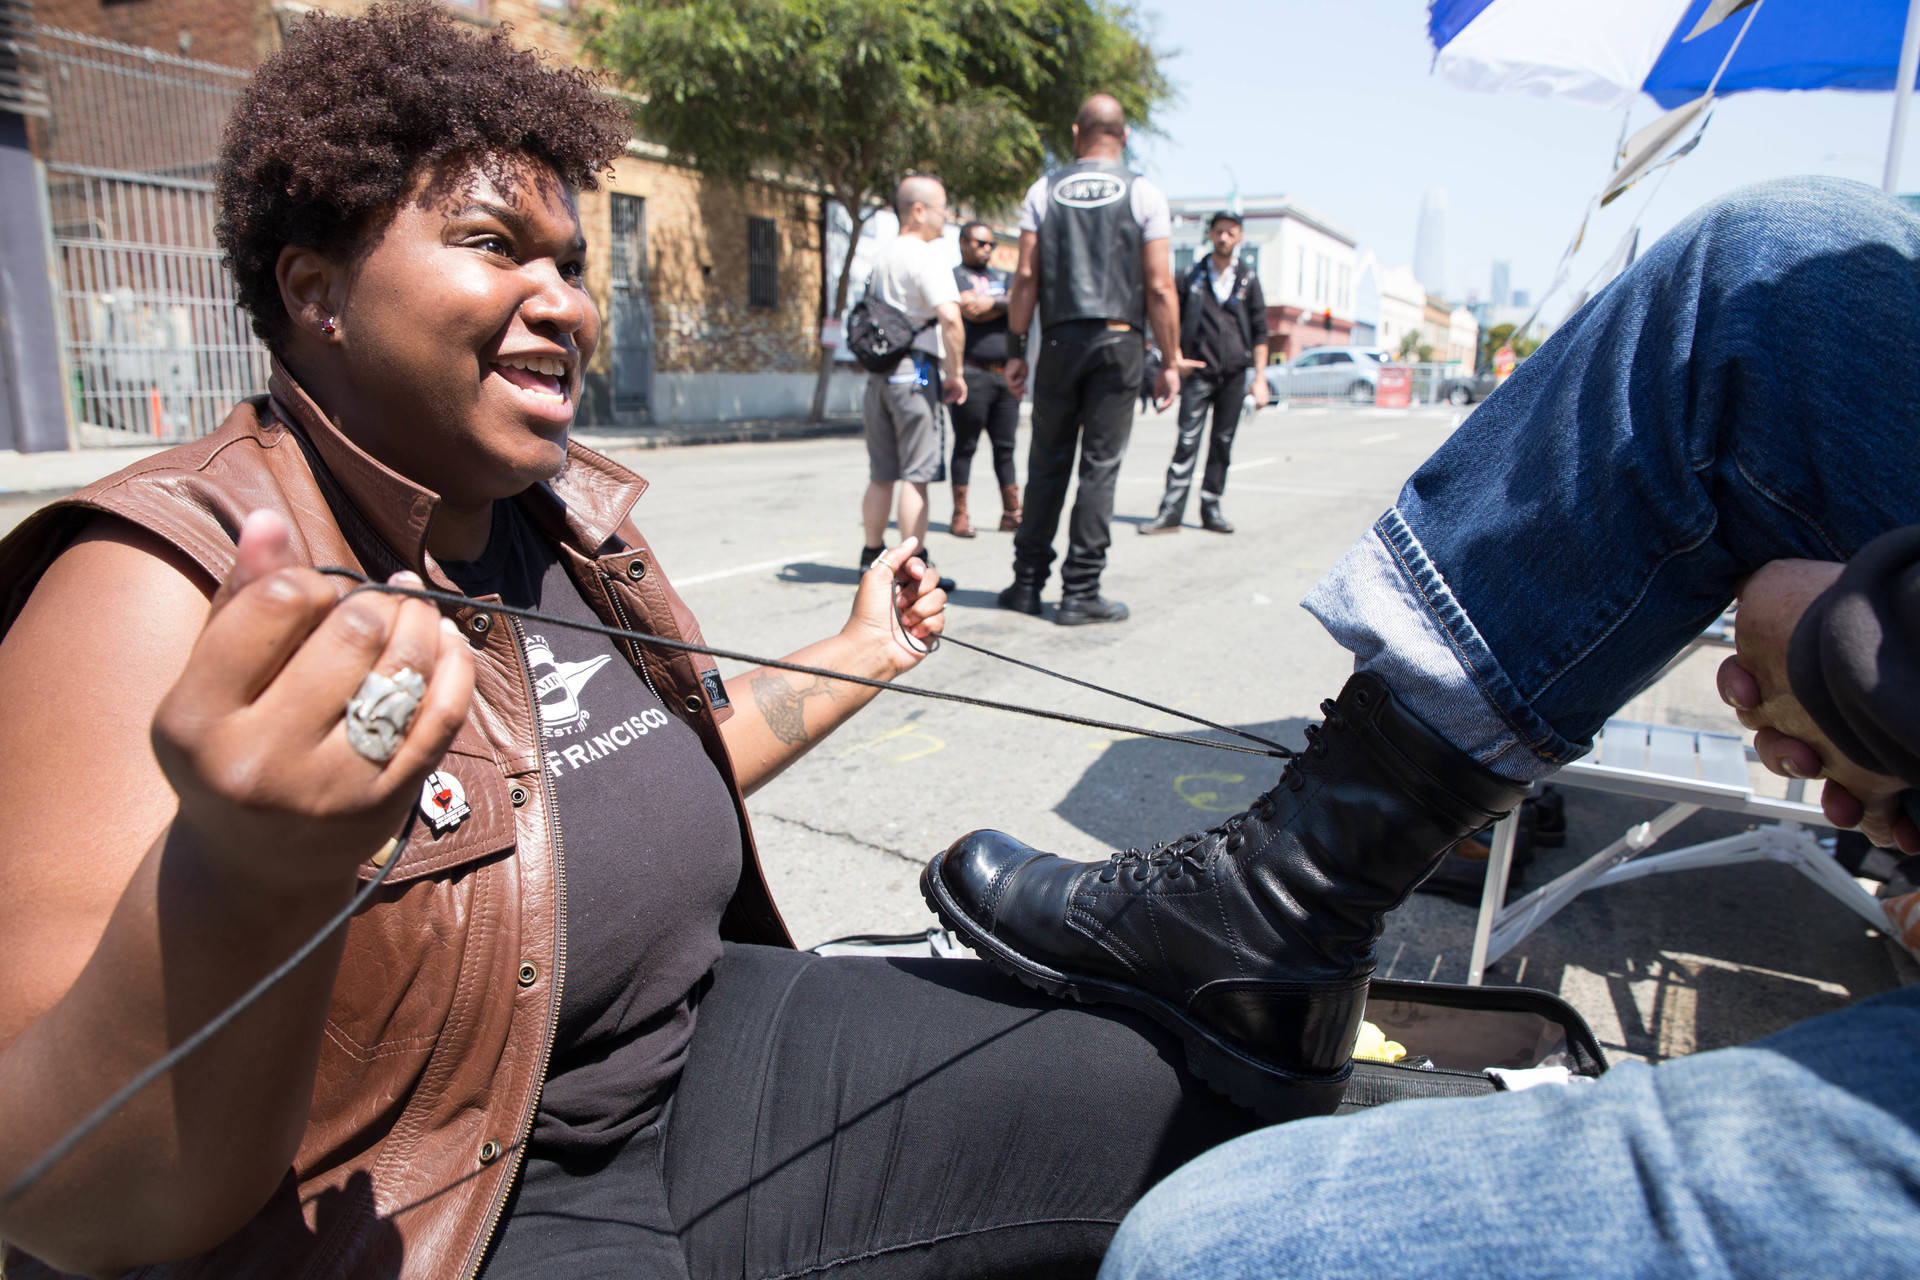 "Victoria Carter cares for a pair of leather boots at the Leather Hub at Sunday Streets SOMA event in San Francisco. Carter was voted the 2018 San Francisco Bootblack, and is an organizer of the San Francisco BootLab, which services the gear in the leather community. ""I think of us kind of like hair dressers or bartenders or whatever. You sit down with us, we take 20 minutes. We talk about your day, some gossip, some upcoming events in the scene. Through that we become history keepers,"" she says.  Sarah Craig/KQED"